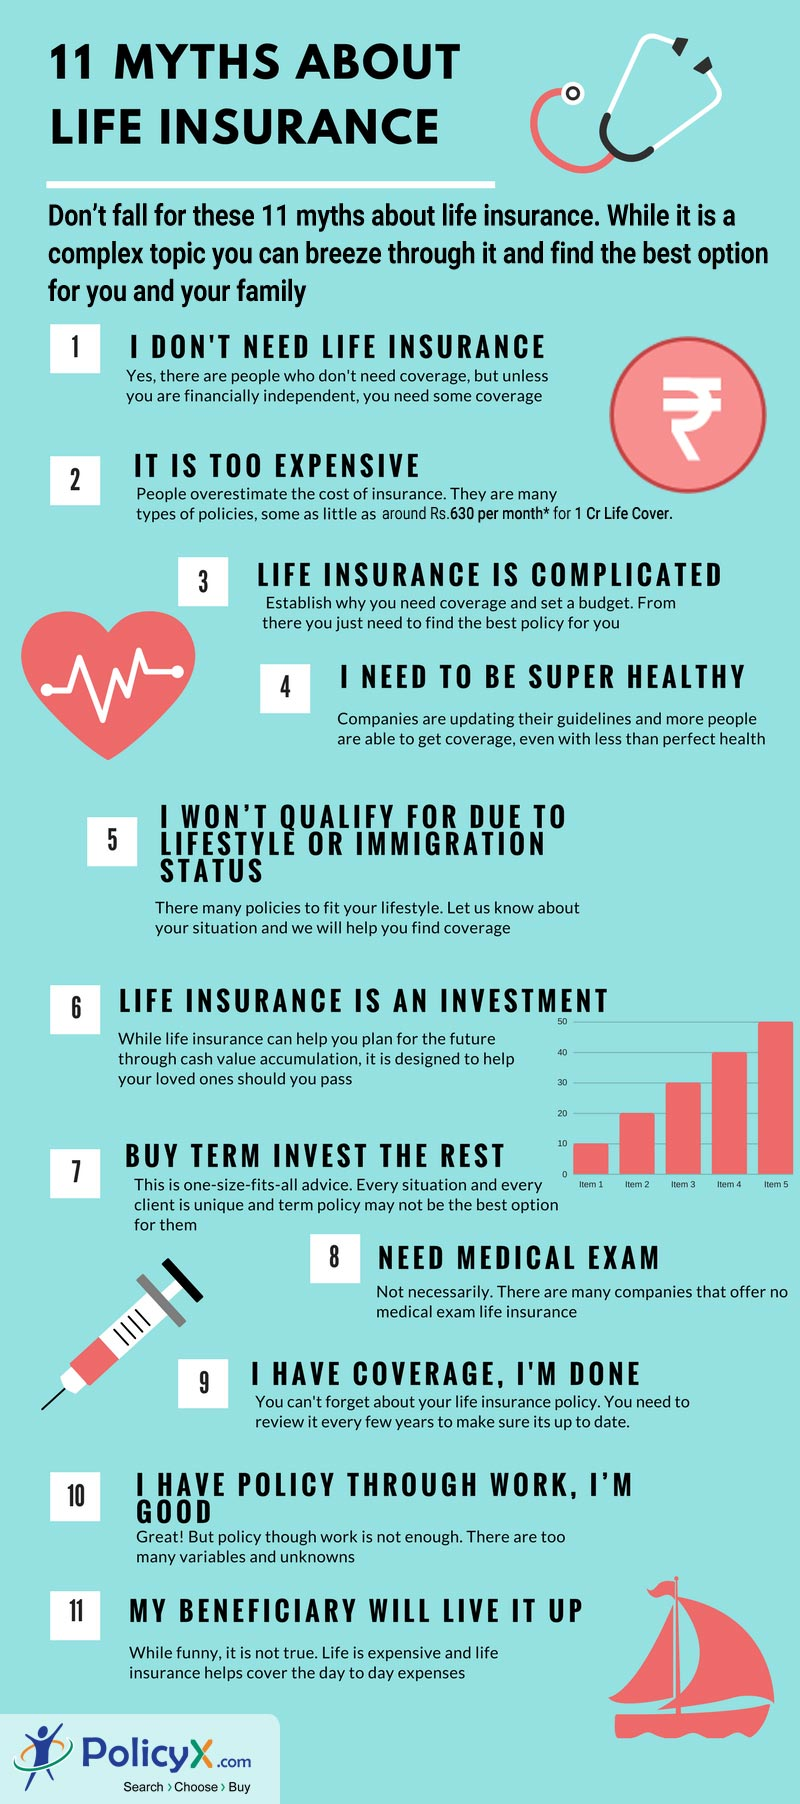 11-Myths-about-life-insurance.jpg